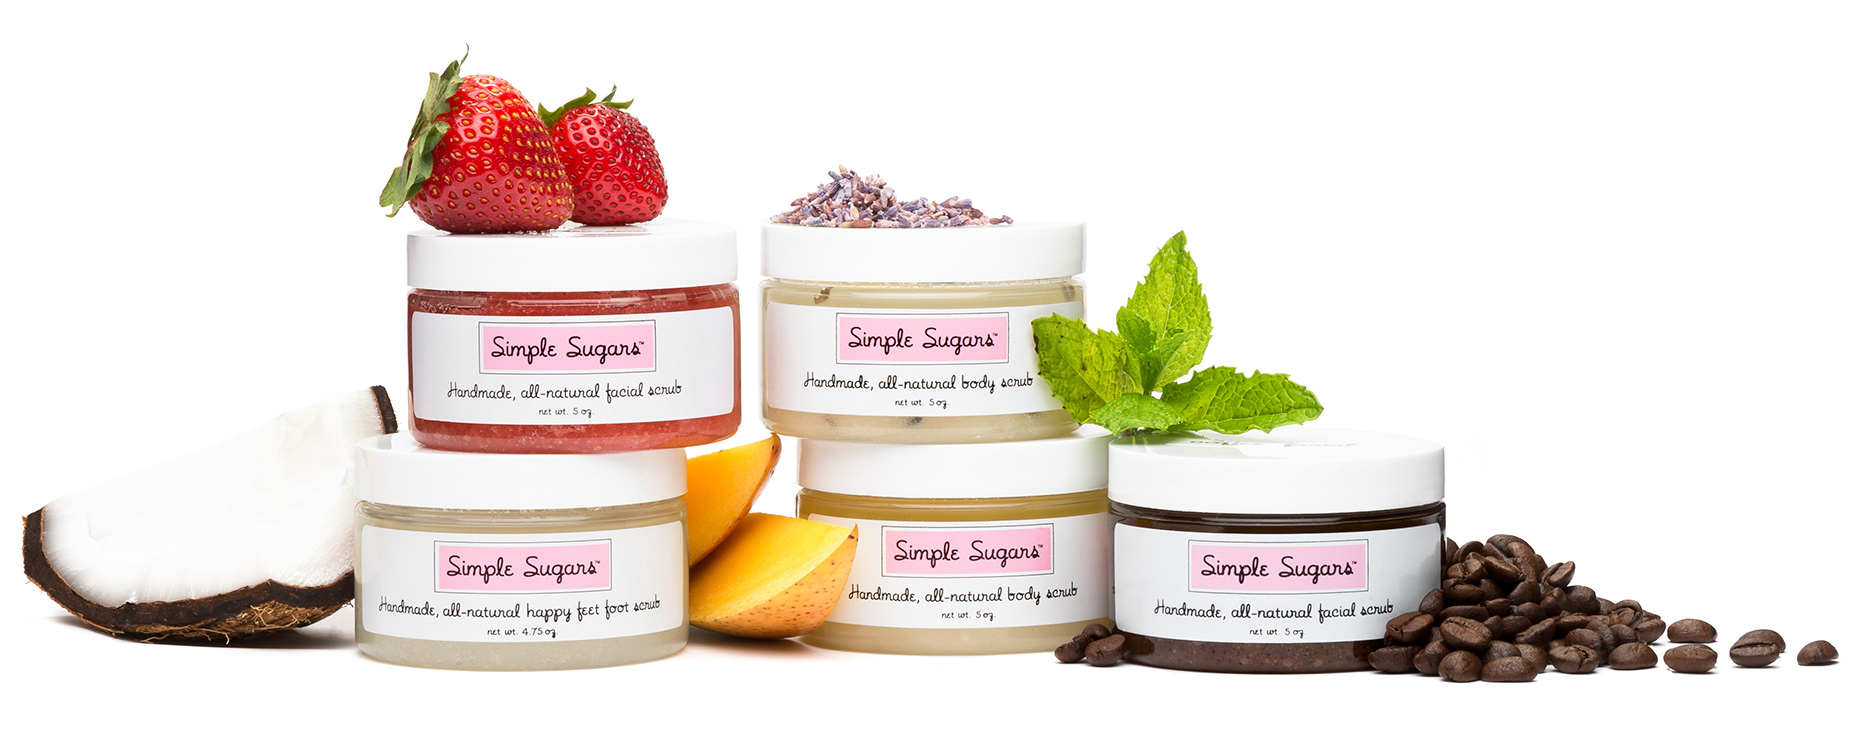 Simple-Sugars-Body-Scrubs_RHanelPhotography_04